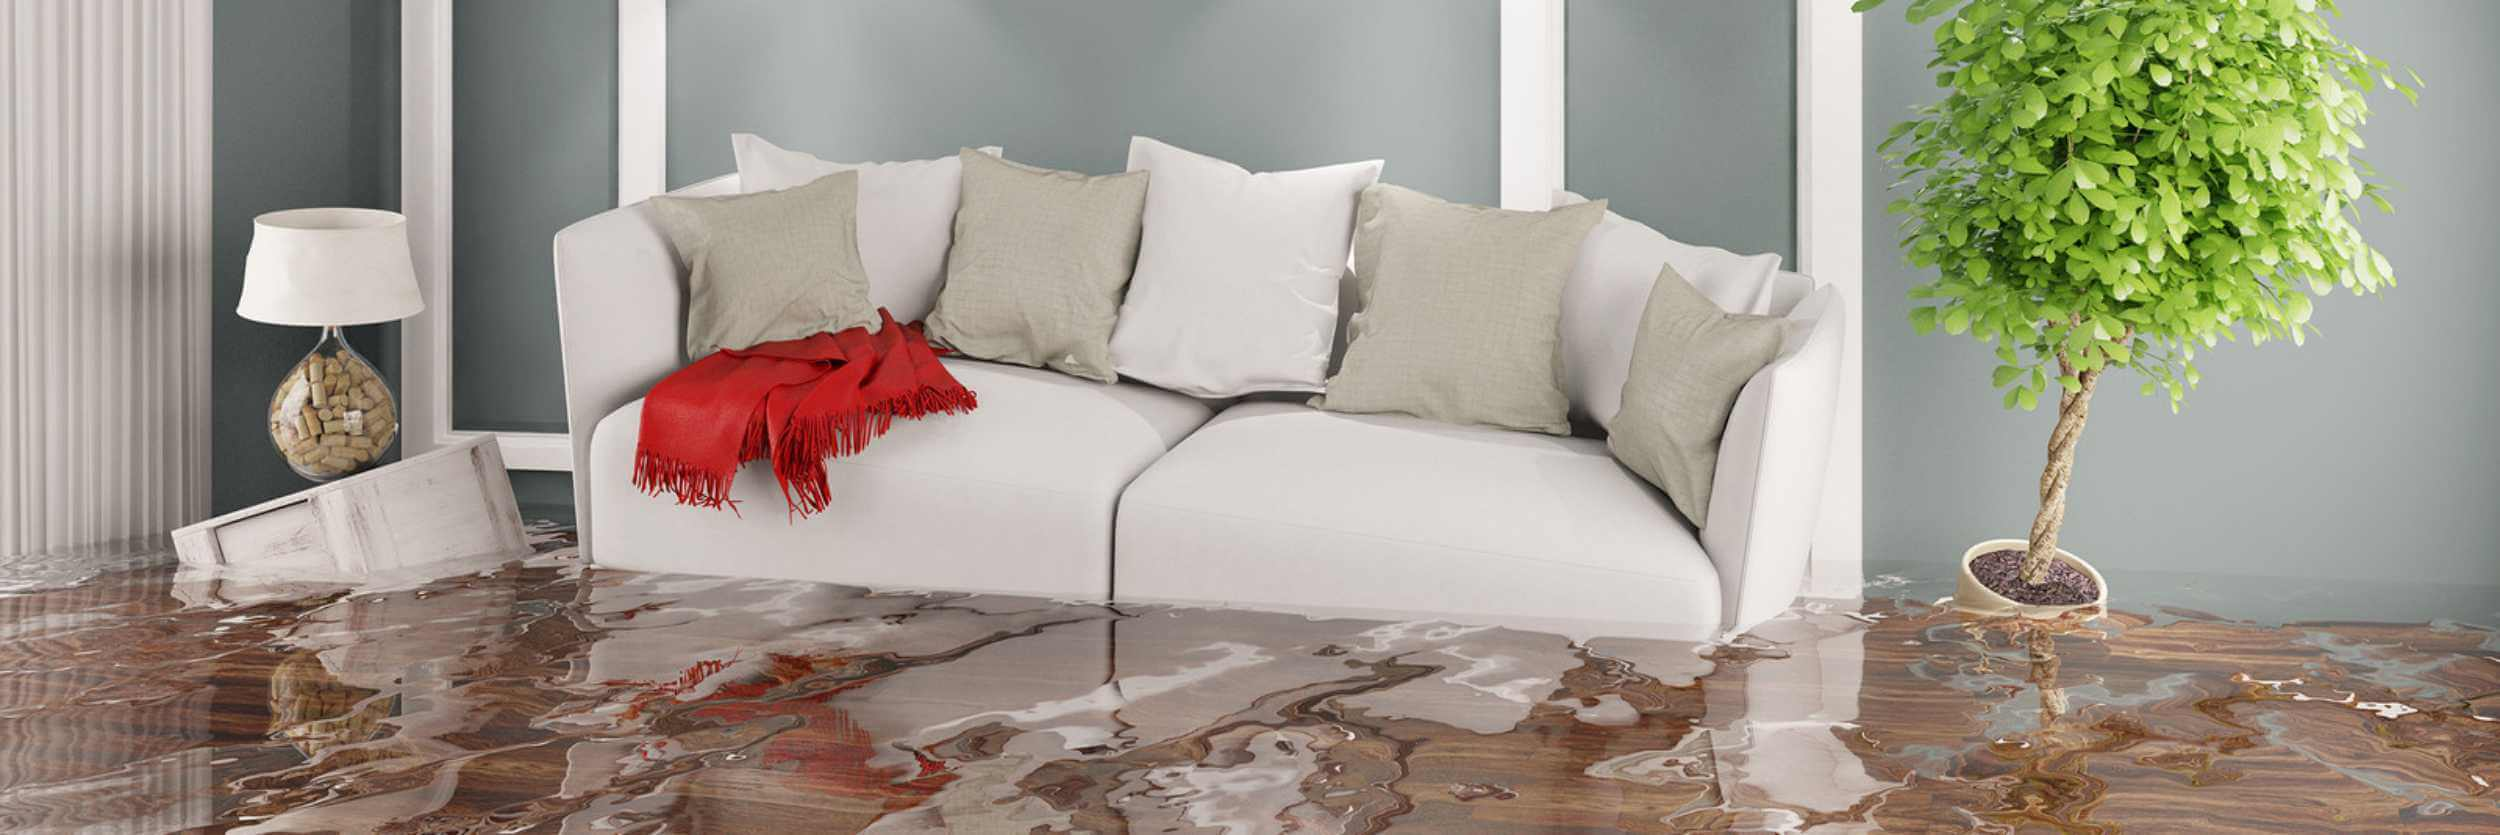 carpet-flood-and-water-damage-melbourne